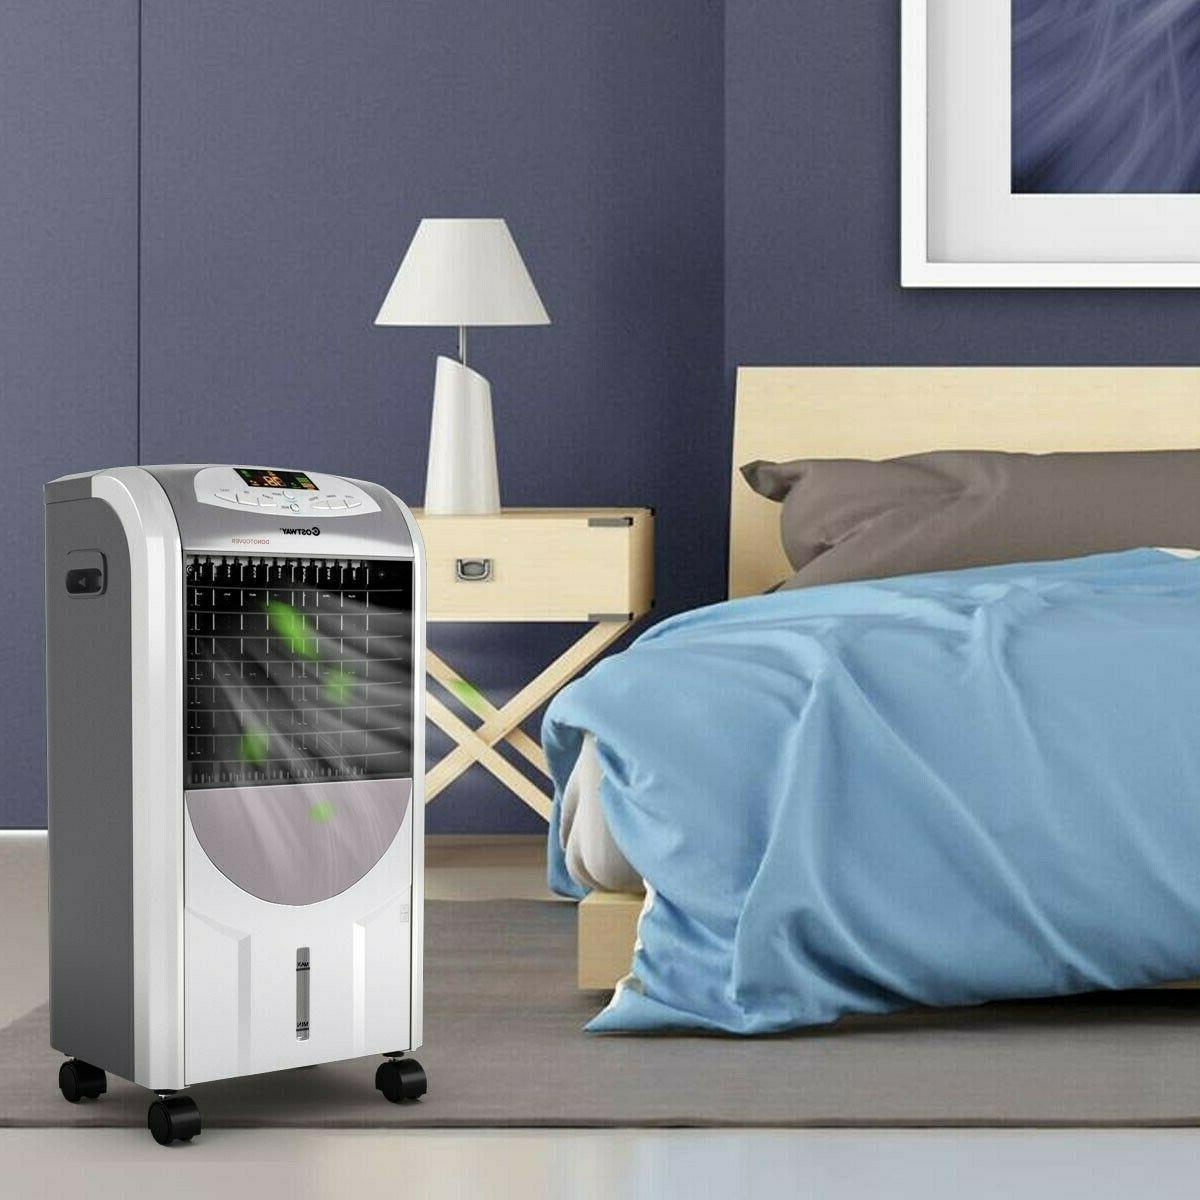 Evaporative Portable Cooler Fan and with Remote Control